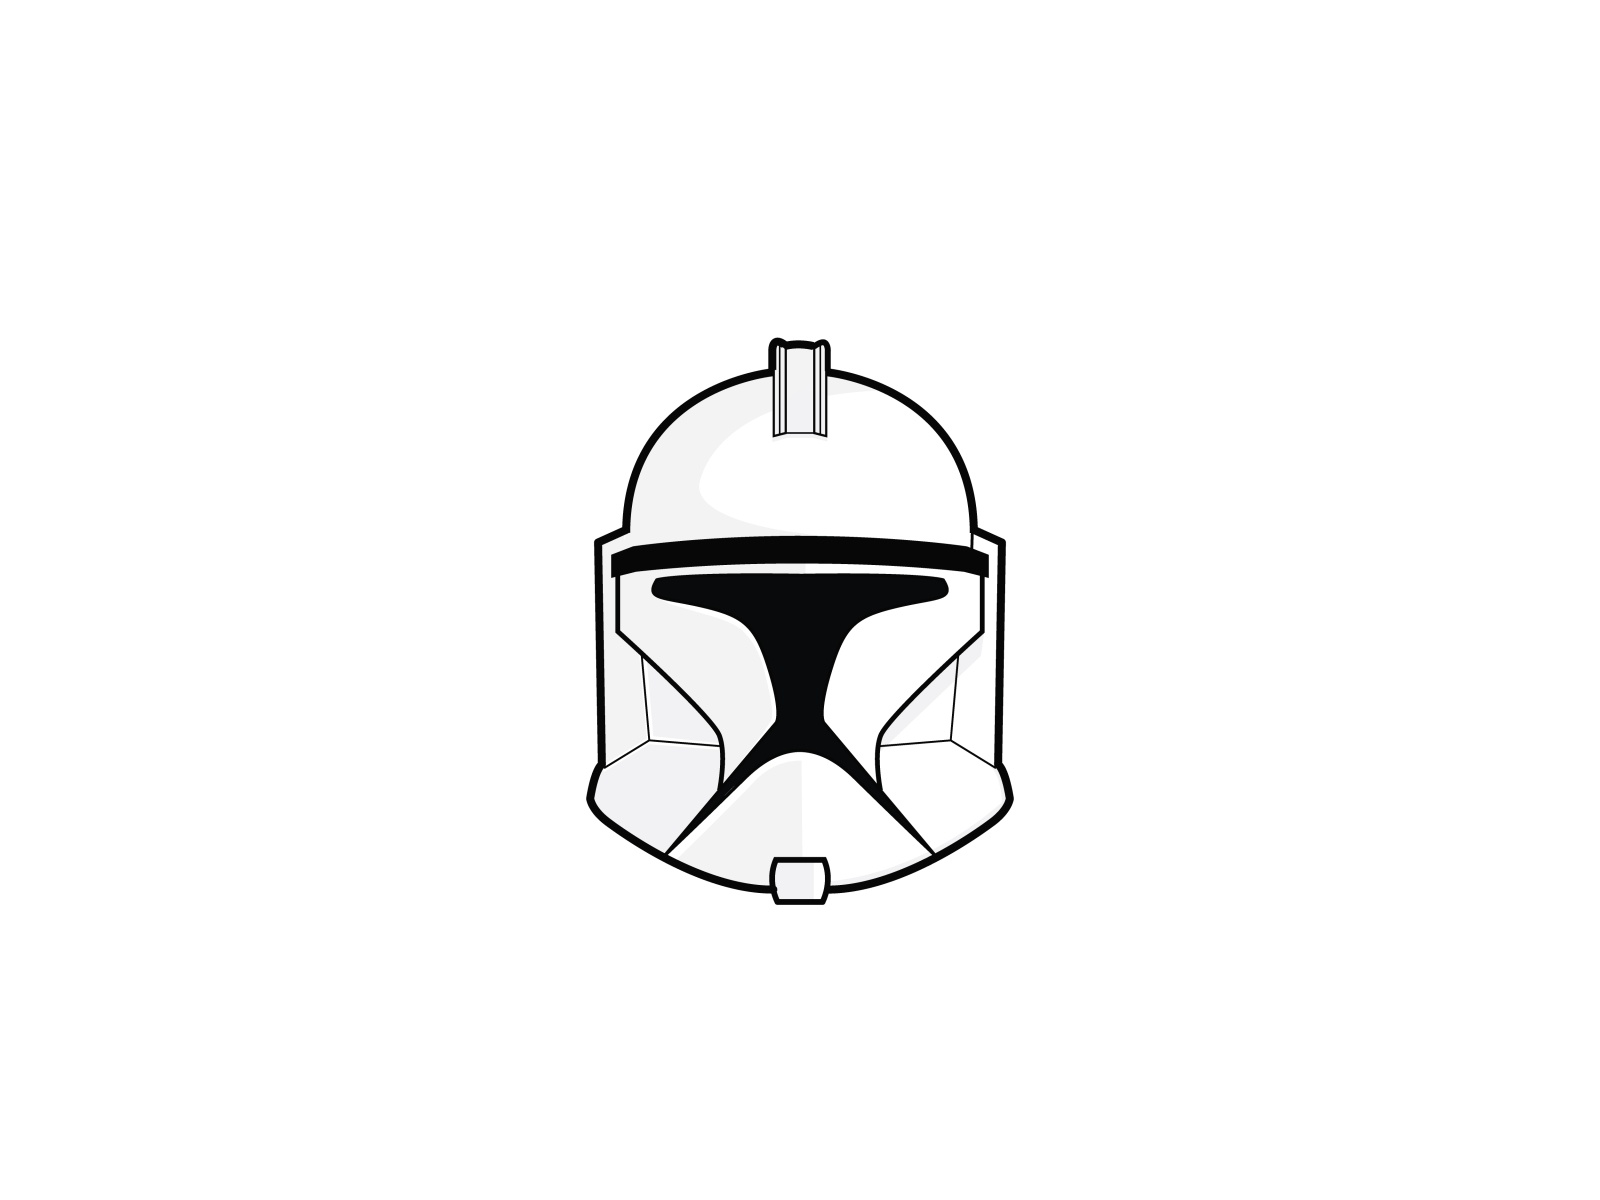 Clone Trooper Star Wars Revenge Of The Sith By Wirral Graphic Designer On Dribbble